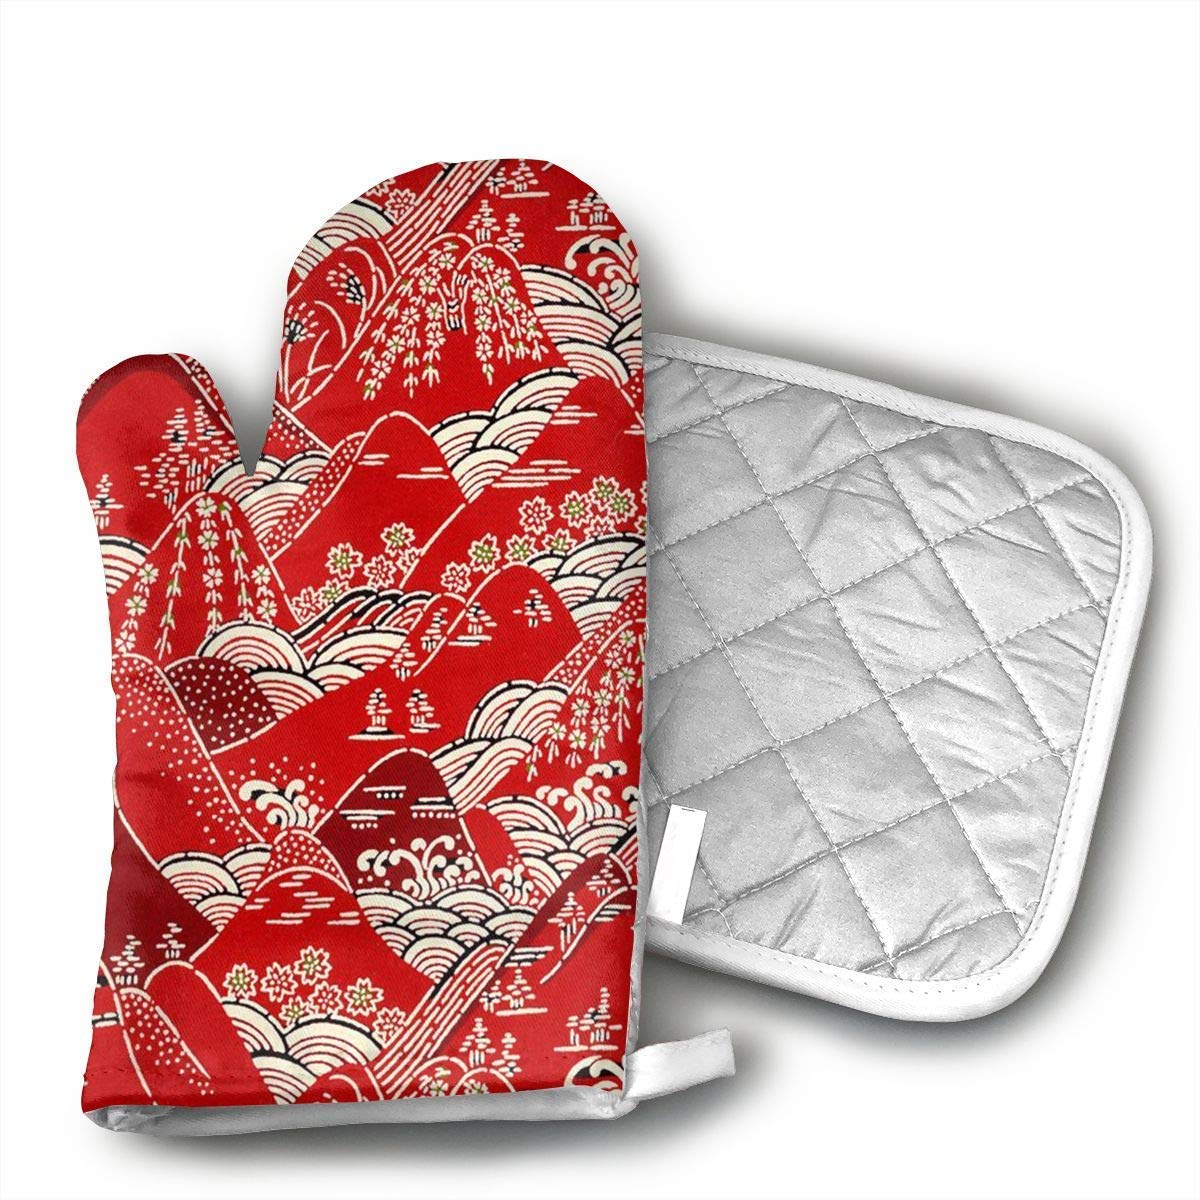 Japanese Art Painting Oven Mitts and Pot Holders Set with Polyester Cotton Non-Slip Grip, Heat Resistant, Oven Gloves for BBQ Cooking Baking, Grilling